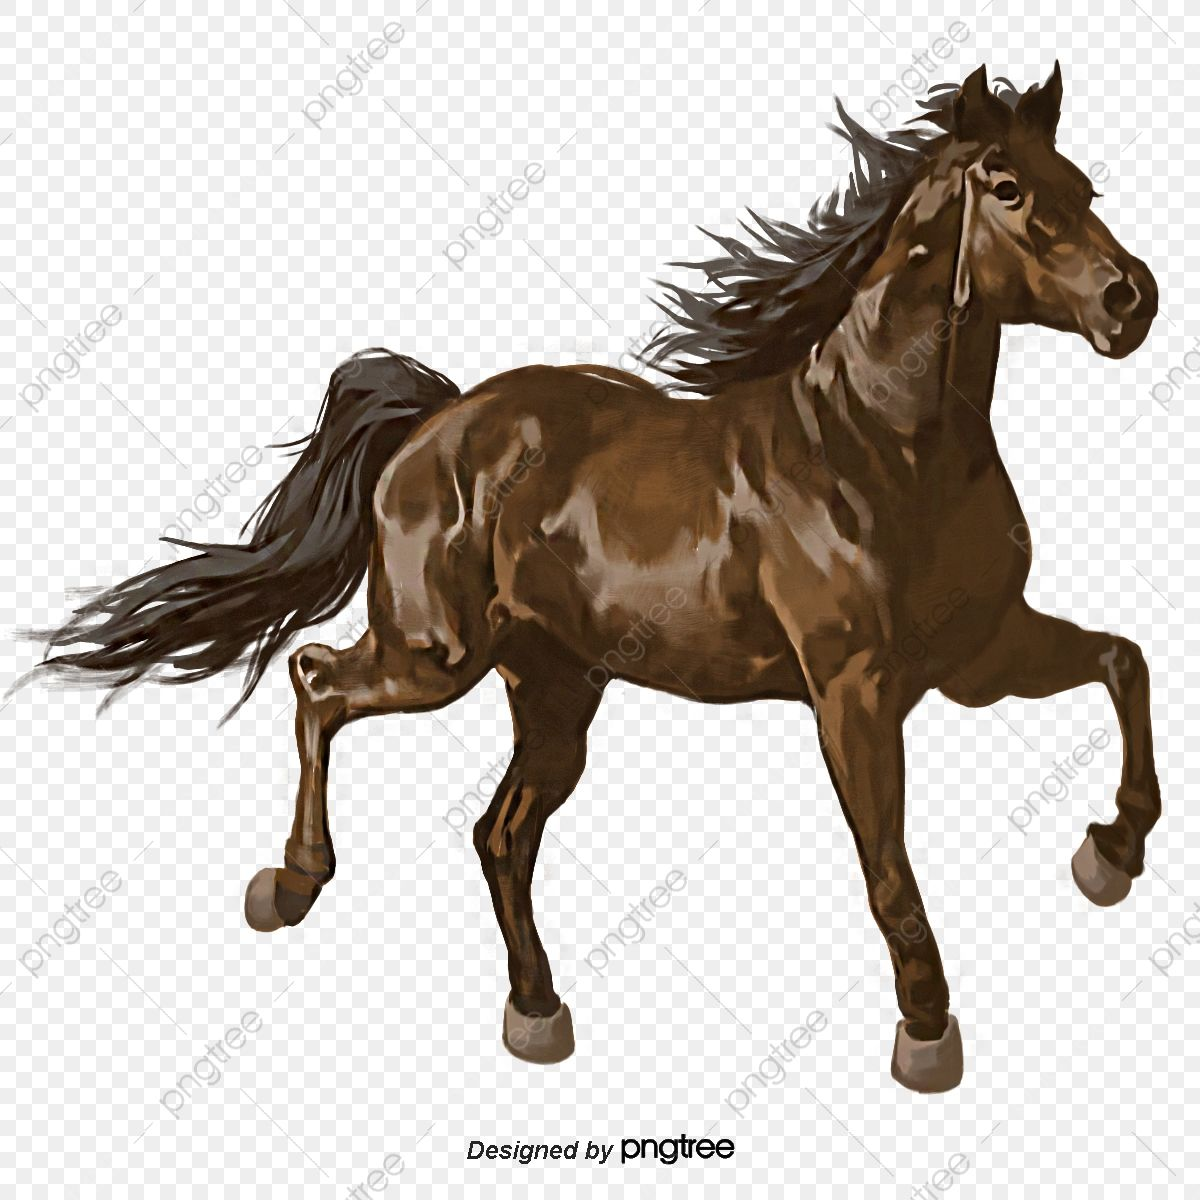 Hand Painted Elements Of Mercedes Benz Horse Riding Horse Animal Running Png Transparent Clipart Image And Psd File For Free Download Horse Background Horses Horse Posters